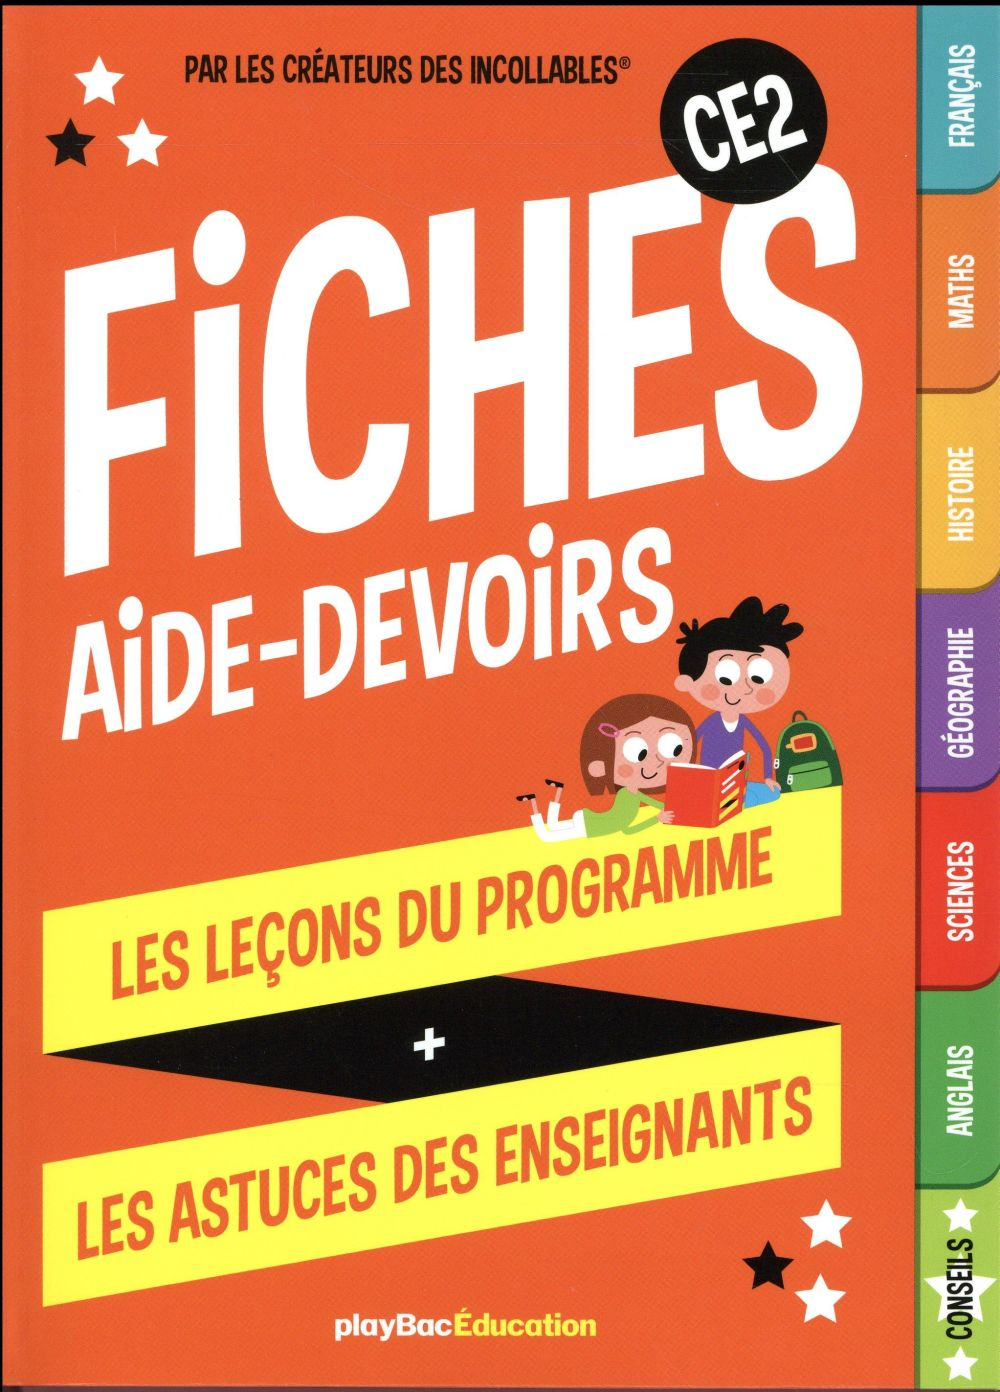 MES FICHES AIDE-DEVOIRS  -  CE2  Play Bac